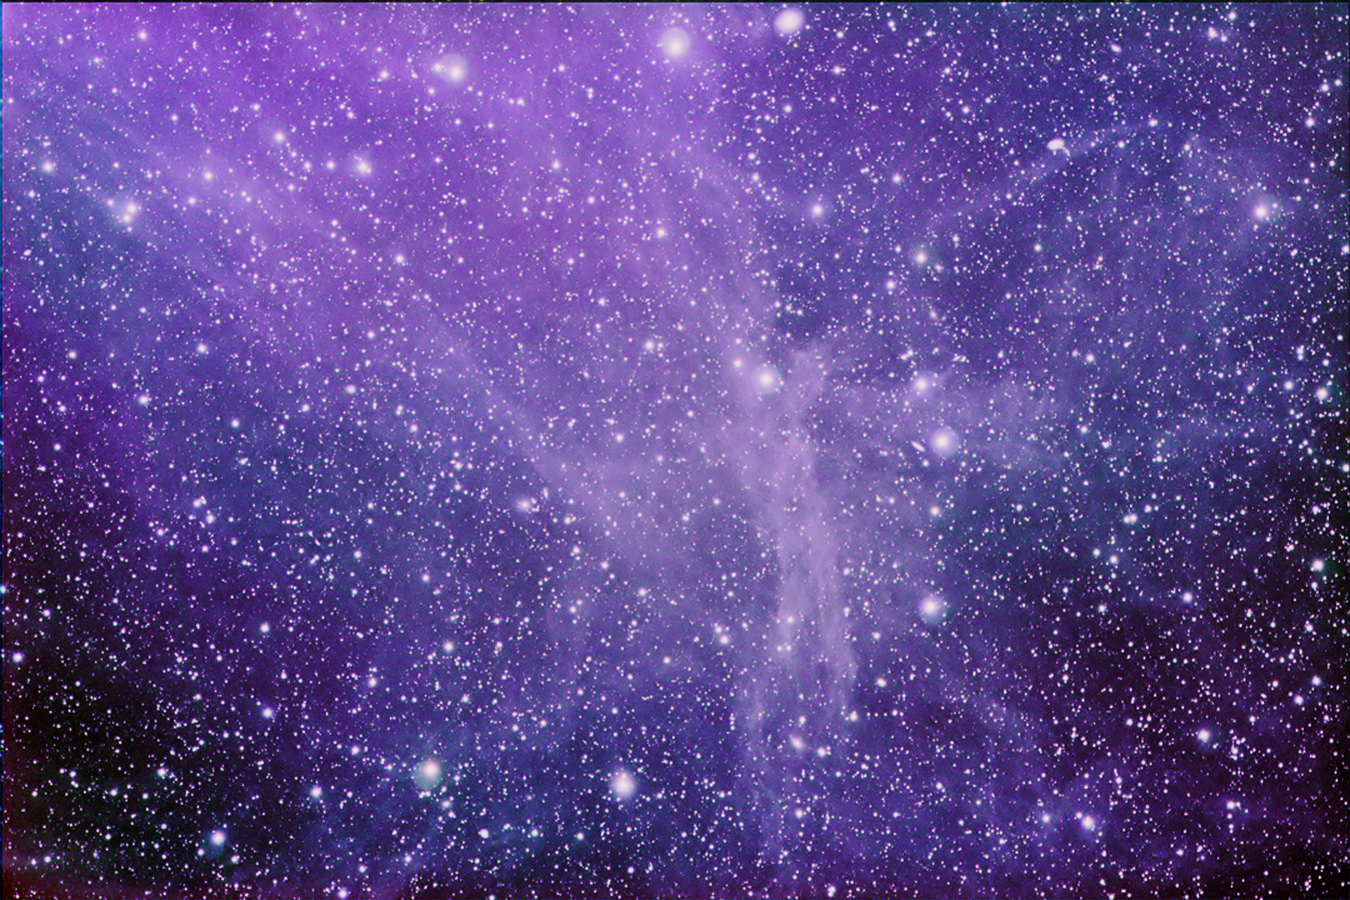 Wallpaper Star Nebula Mest (page 3) - Pics about space